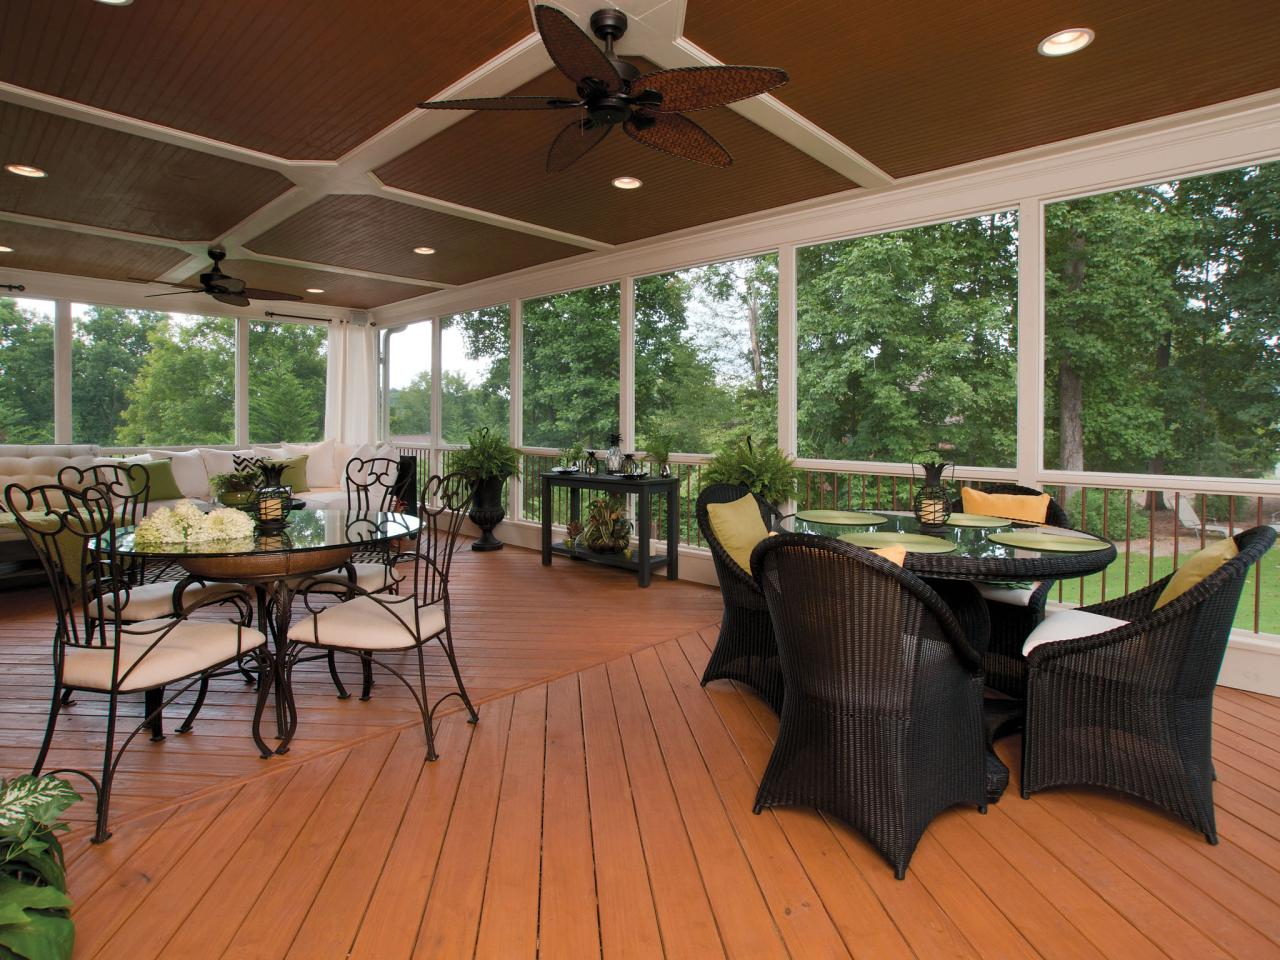 Ceiling Outdoor Porch Fans Patio Fan Reviews Utilityauditco intended for size 1280 X 960